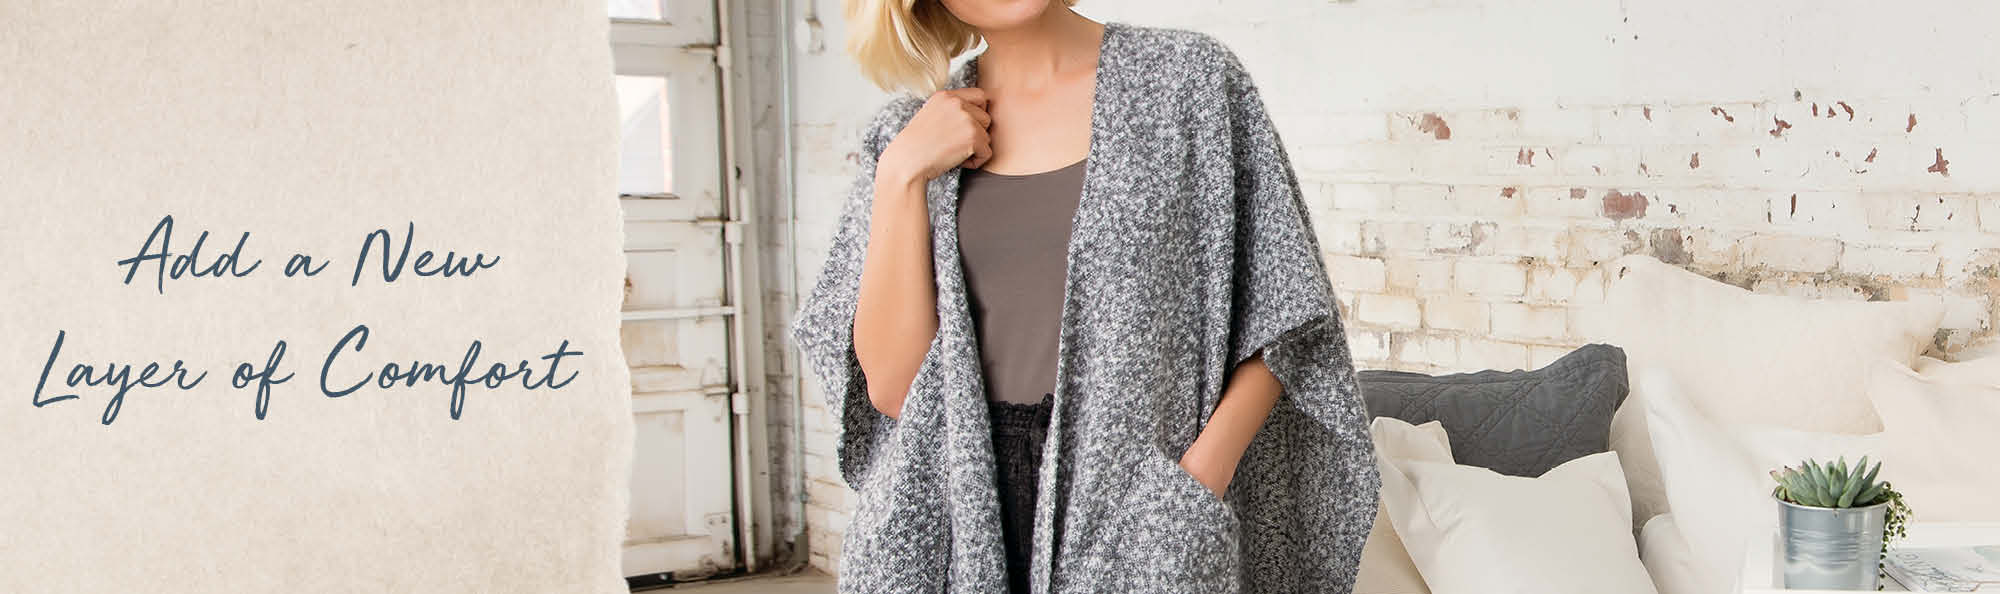 Add a new layer of comfort. Woman wearing a gray robe over her shoulders.